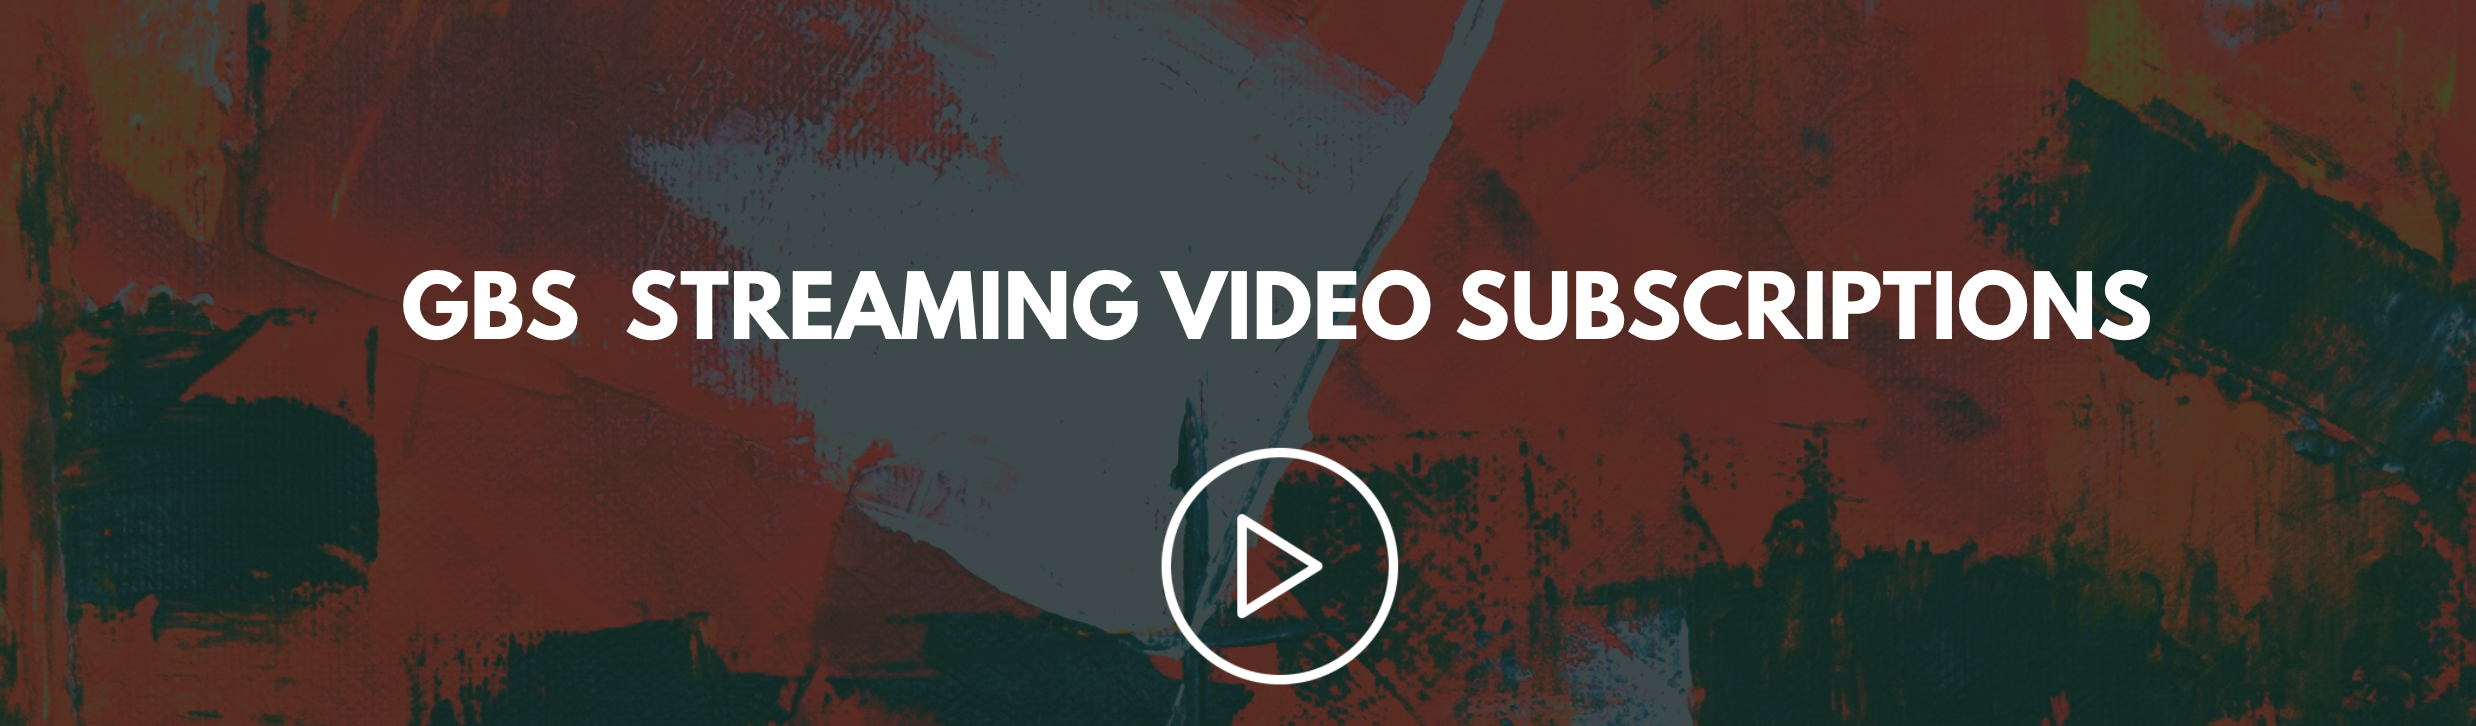 GBS Streaming Video Subscriptions